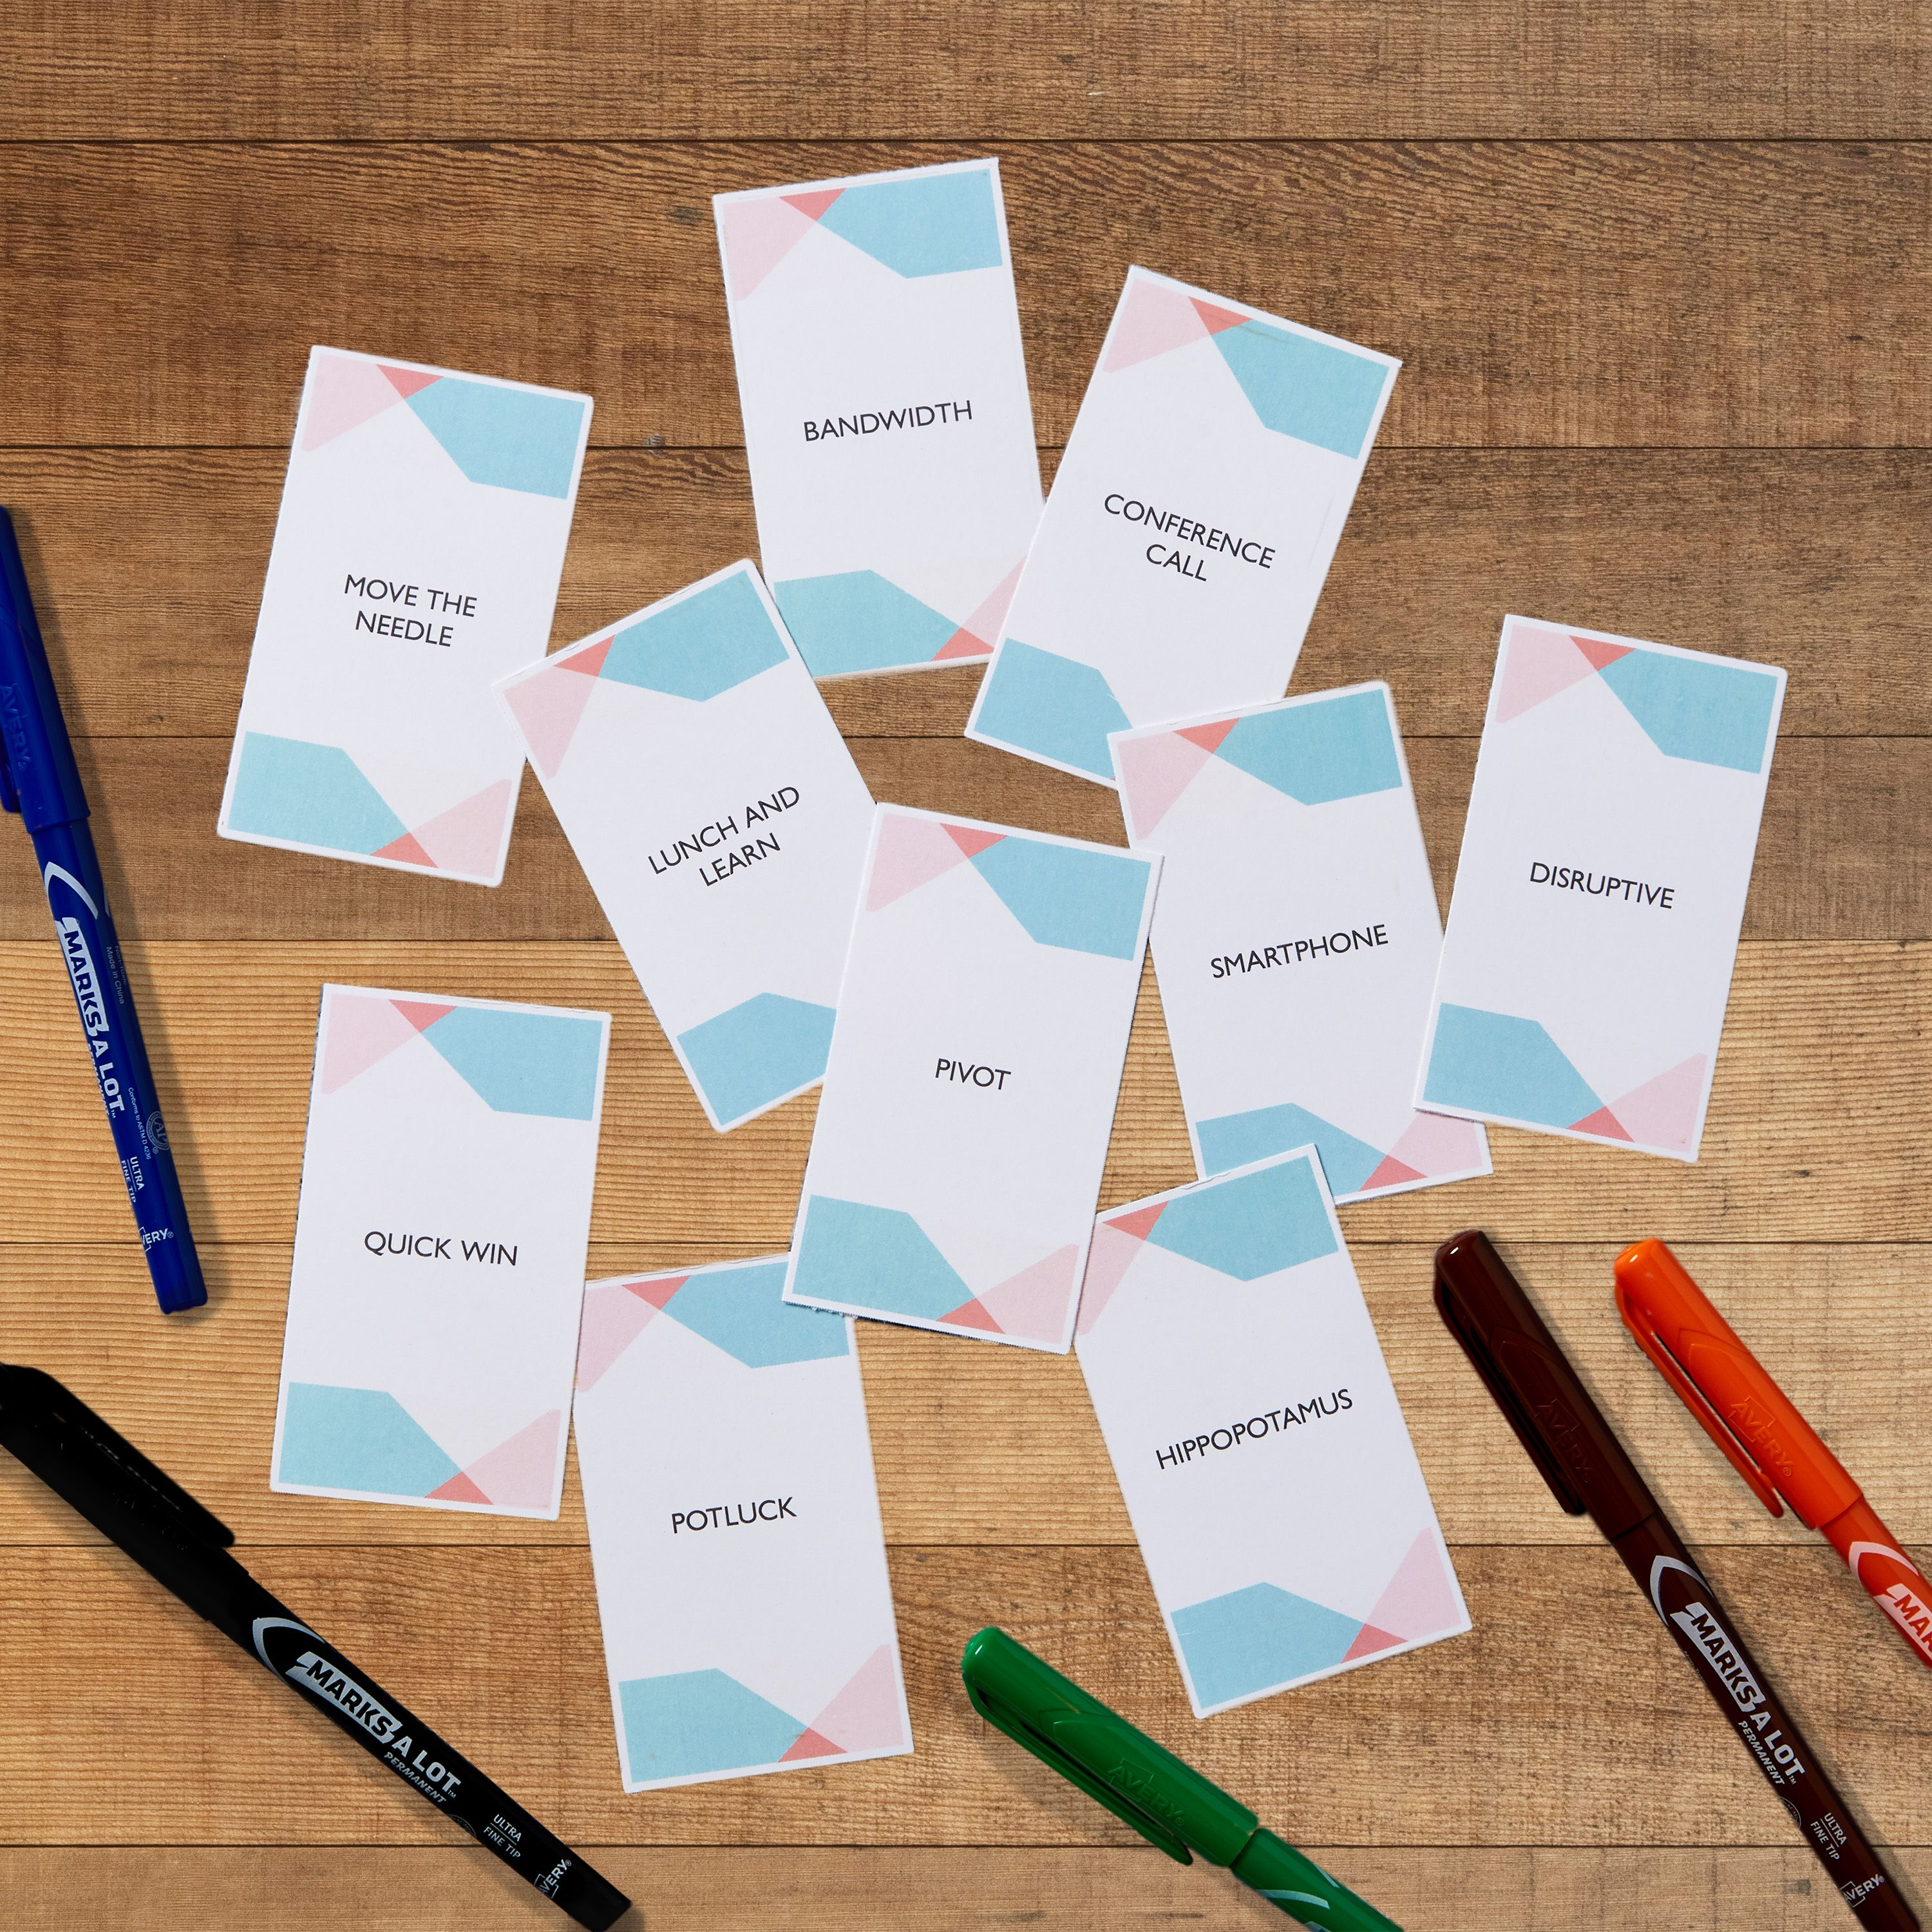 At Home Team Building Games And Activities Free Printables Free Printable Business Cards Printable Business Cards Avery Labels